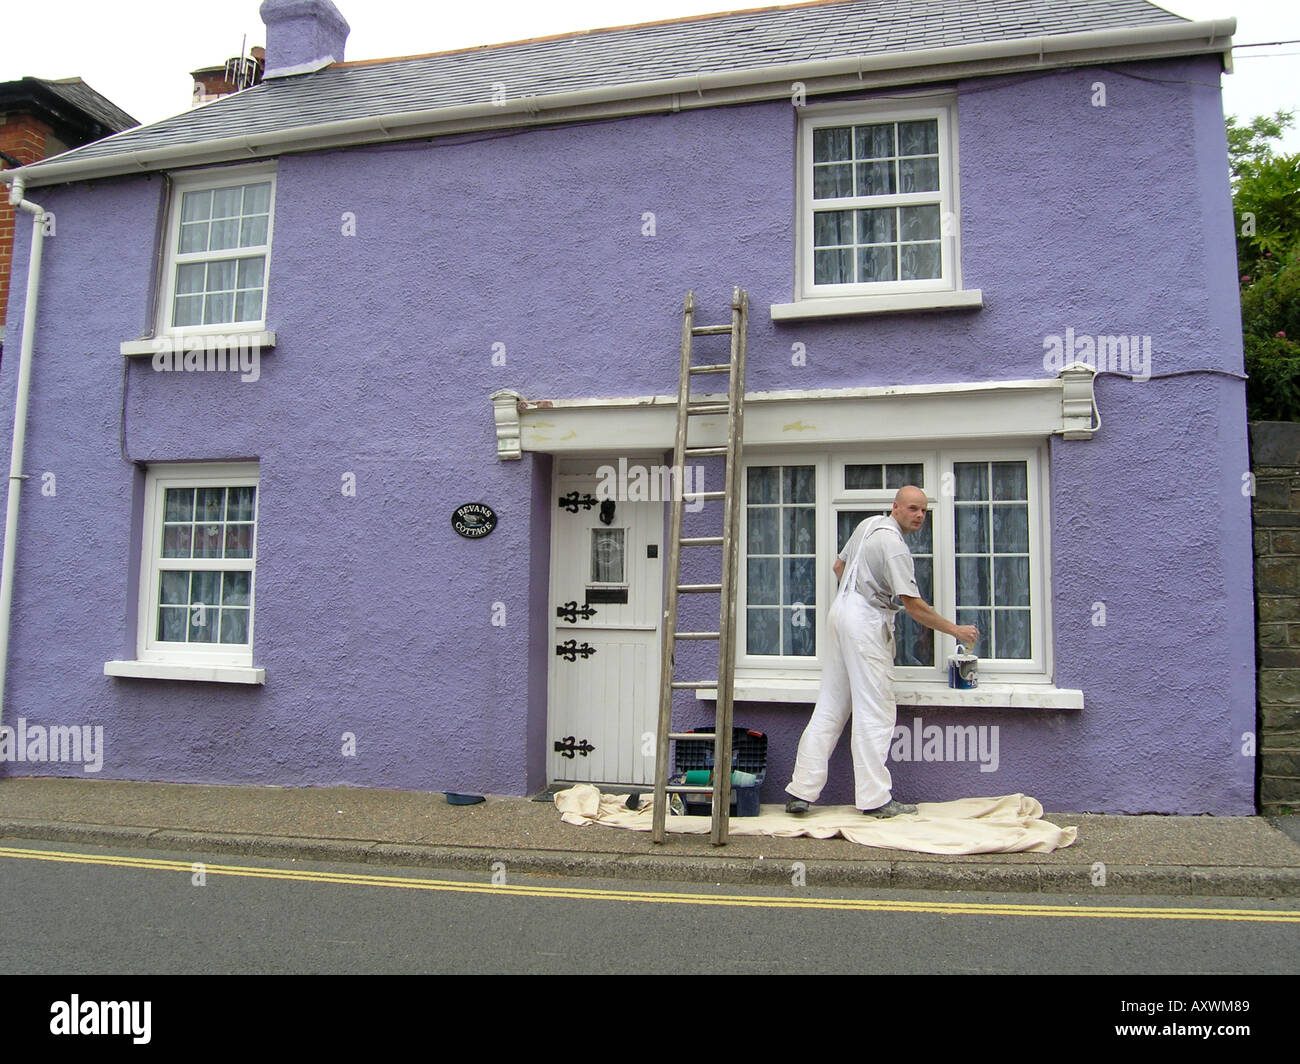 painter redecorating exteroir of purple house in Combe Martin Devon ...